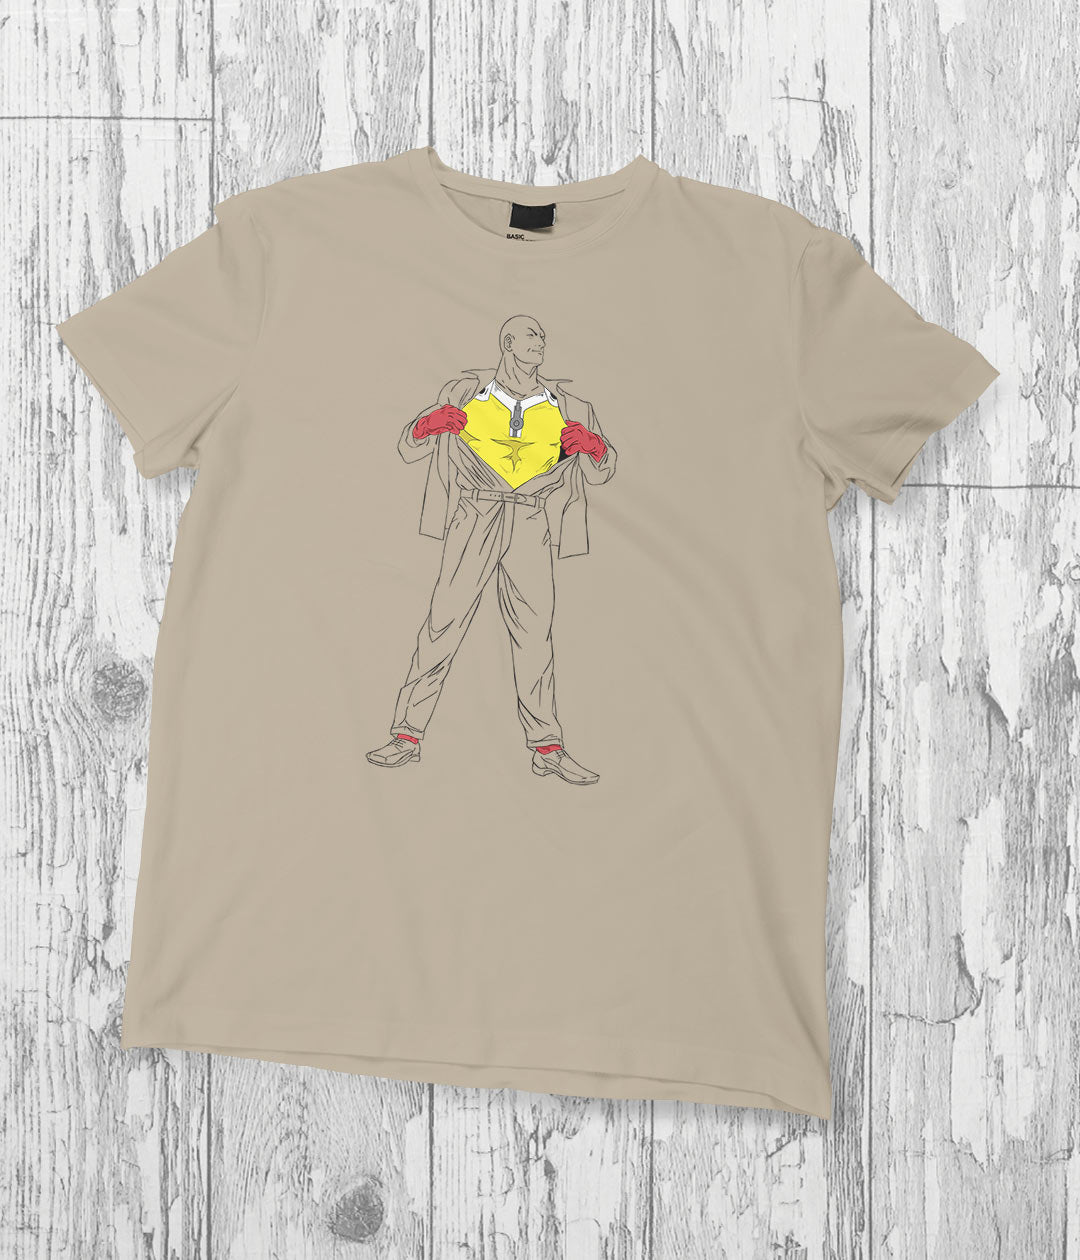 beige t shirt with anime drawing of saitama as superman